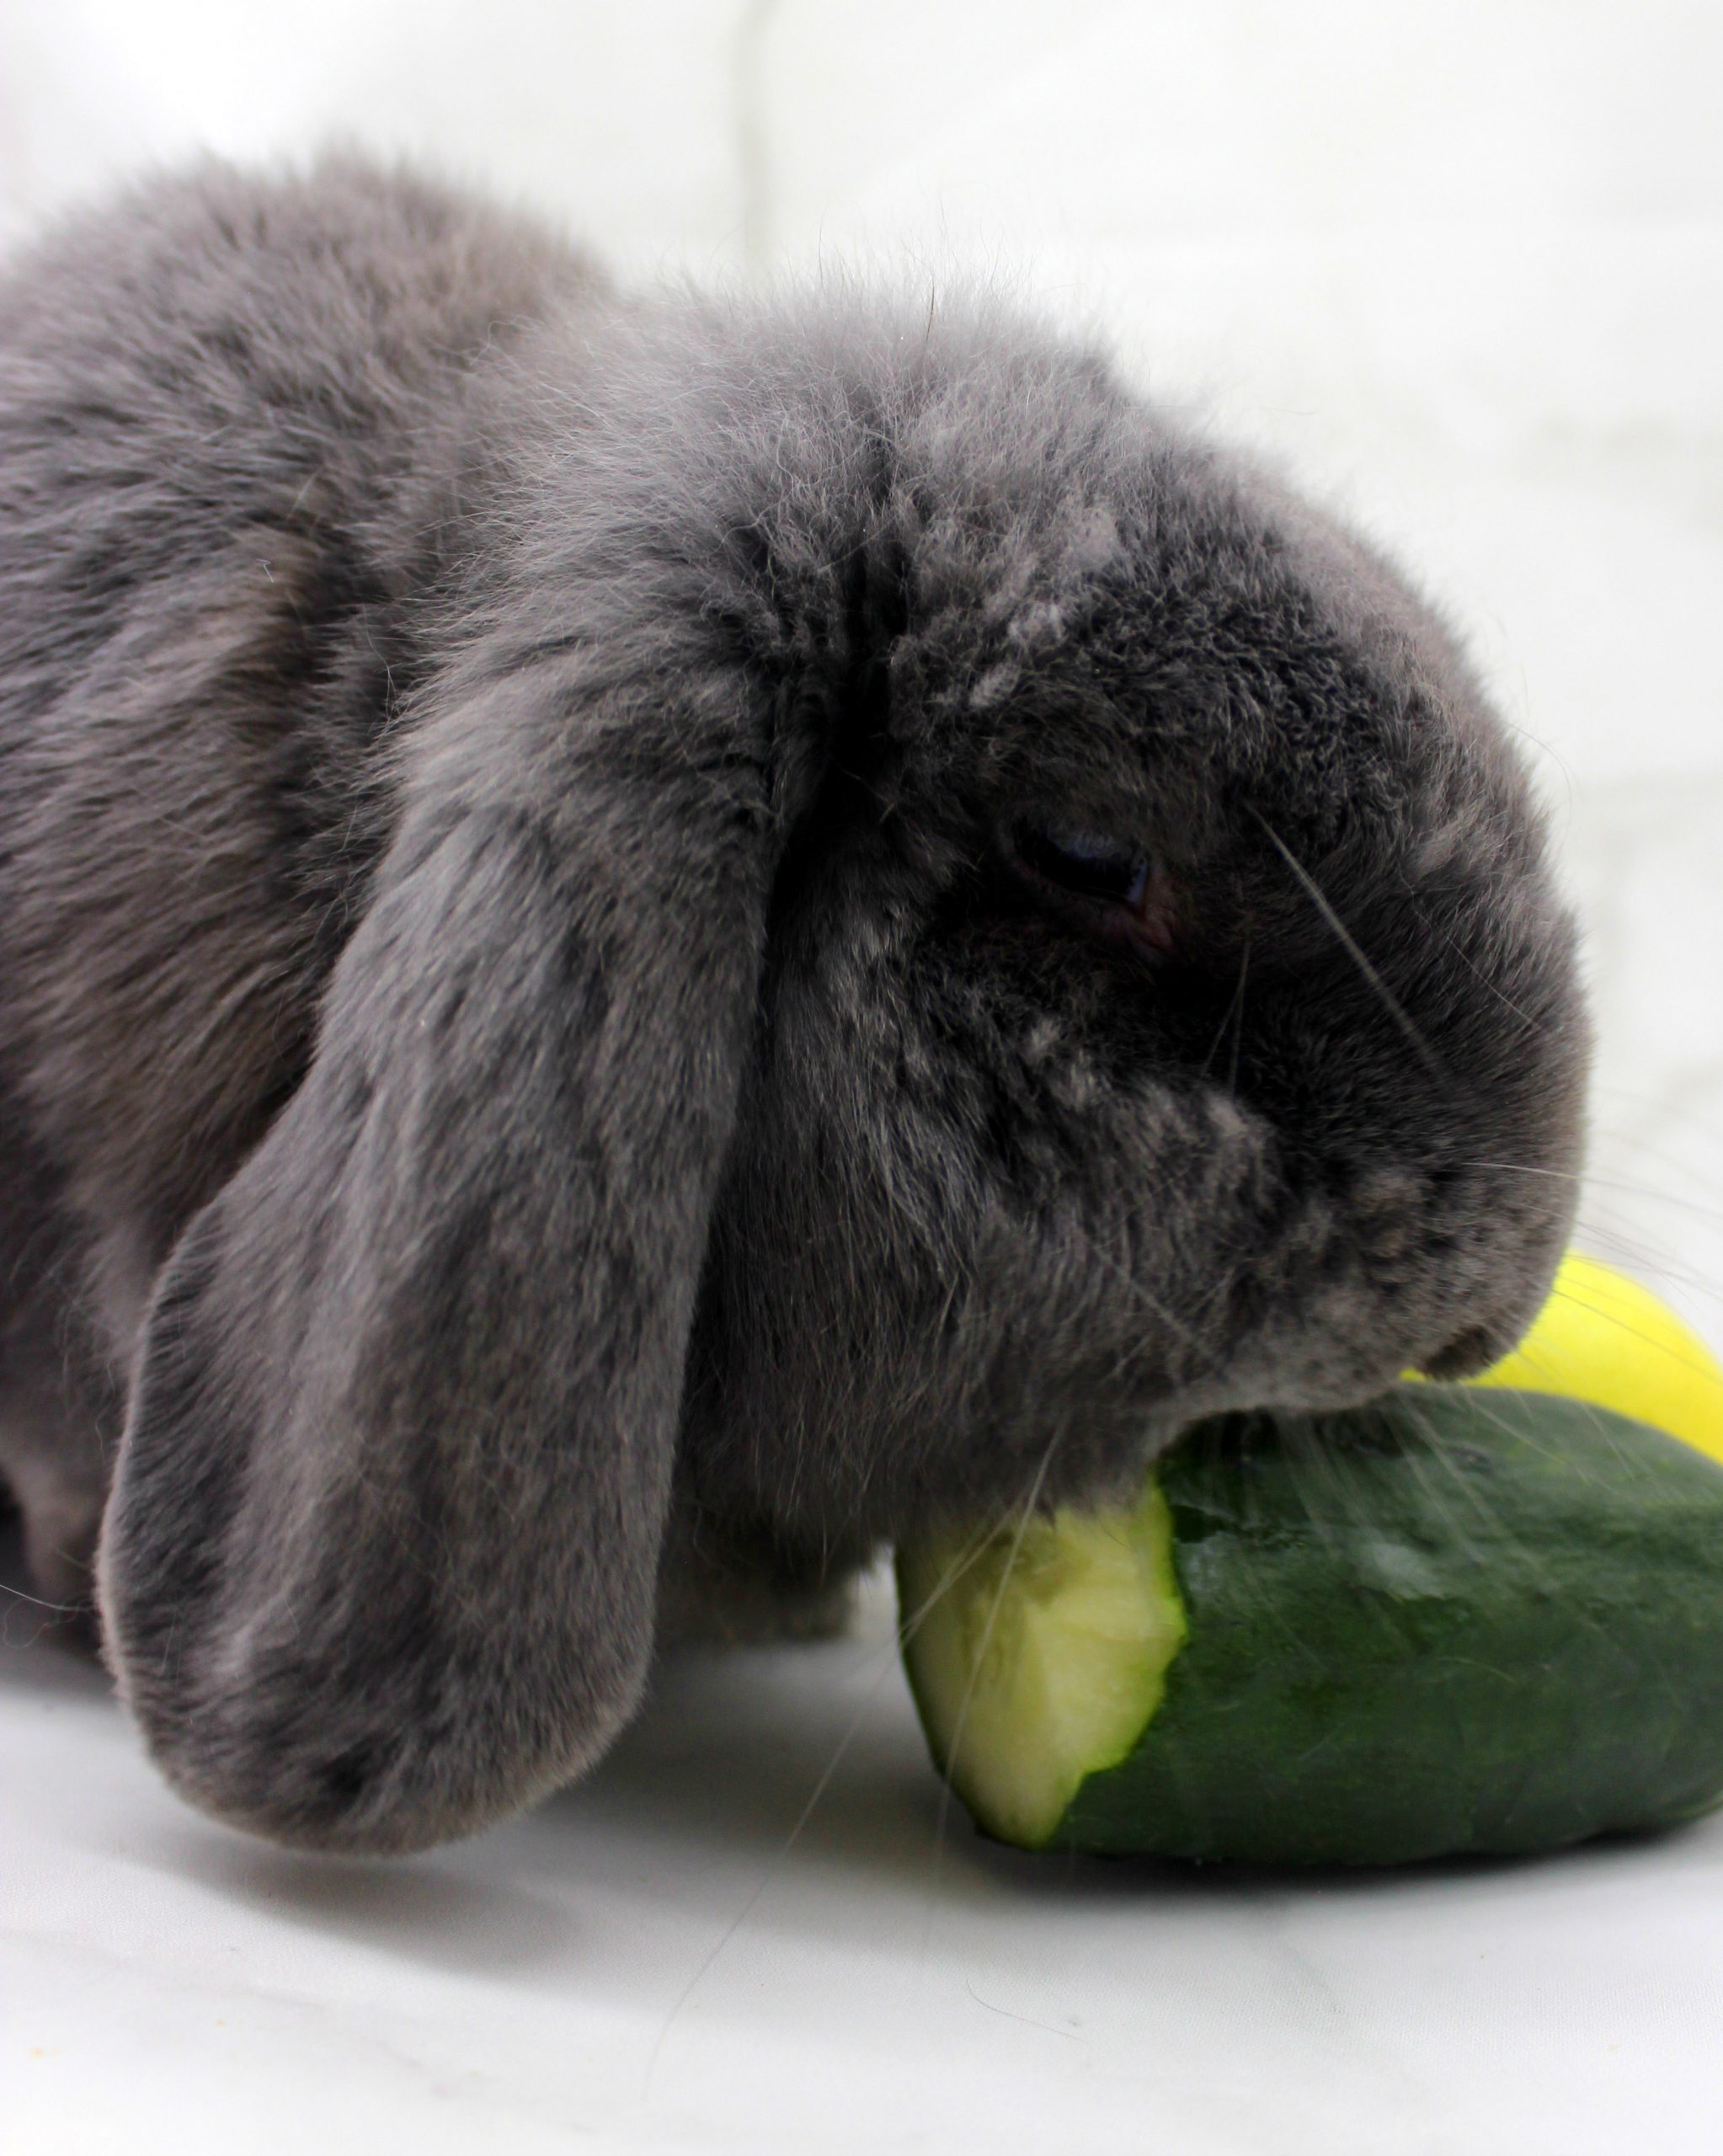 Cute bunny eating a cucumber